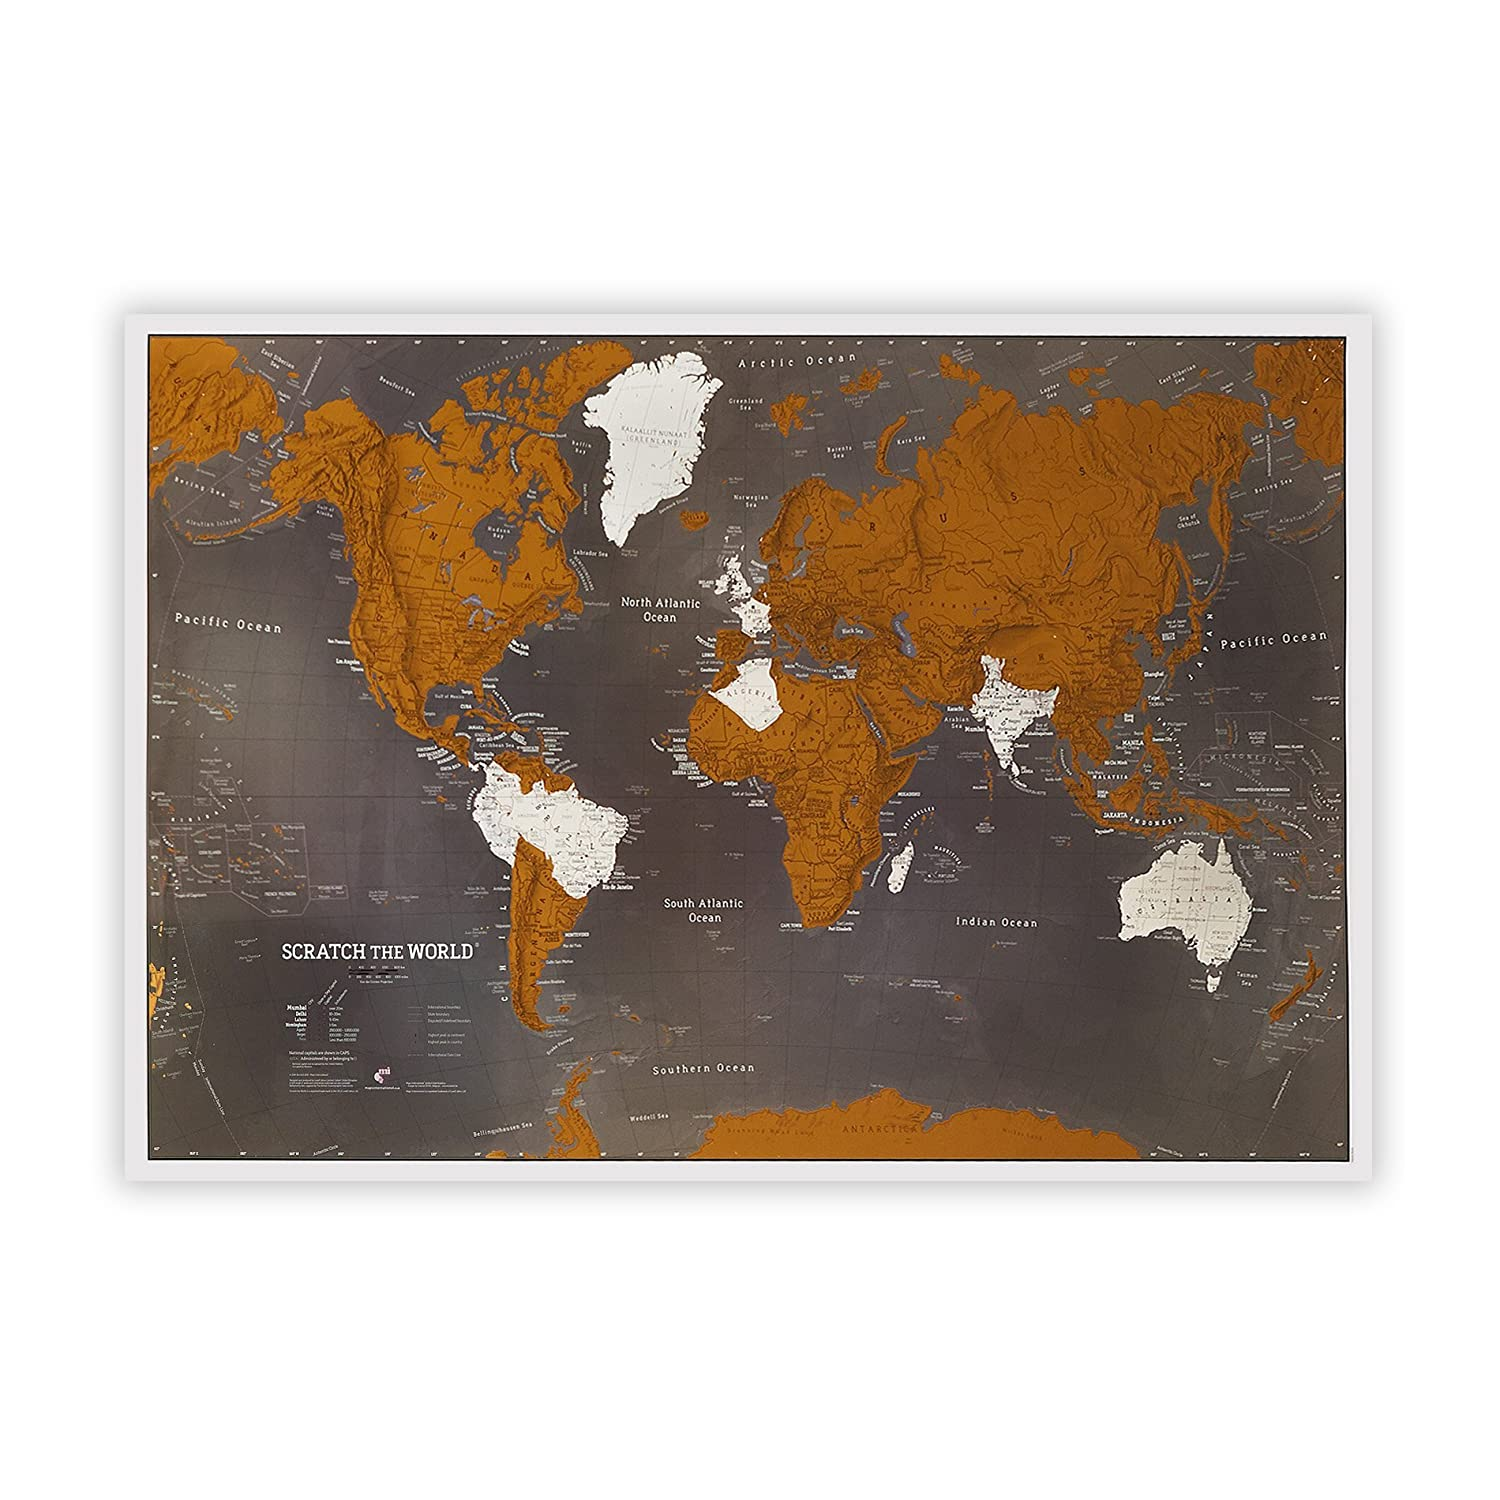 Maps International Scratch the World Travel Map - Black Scratch Off World Map Poster - 33 x 23